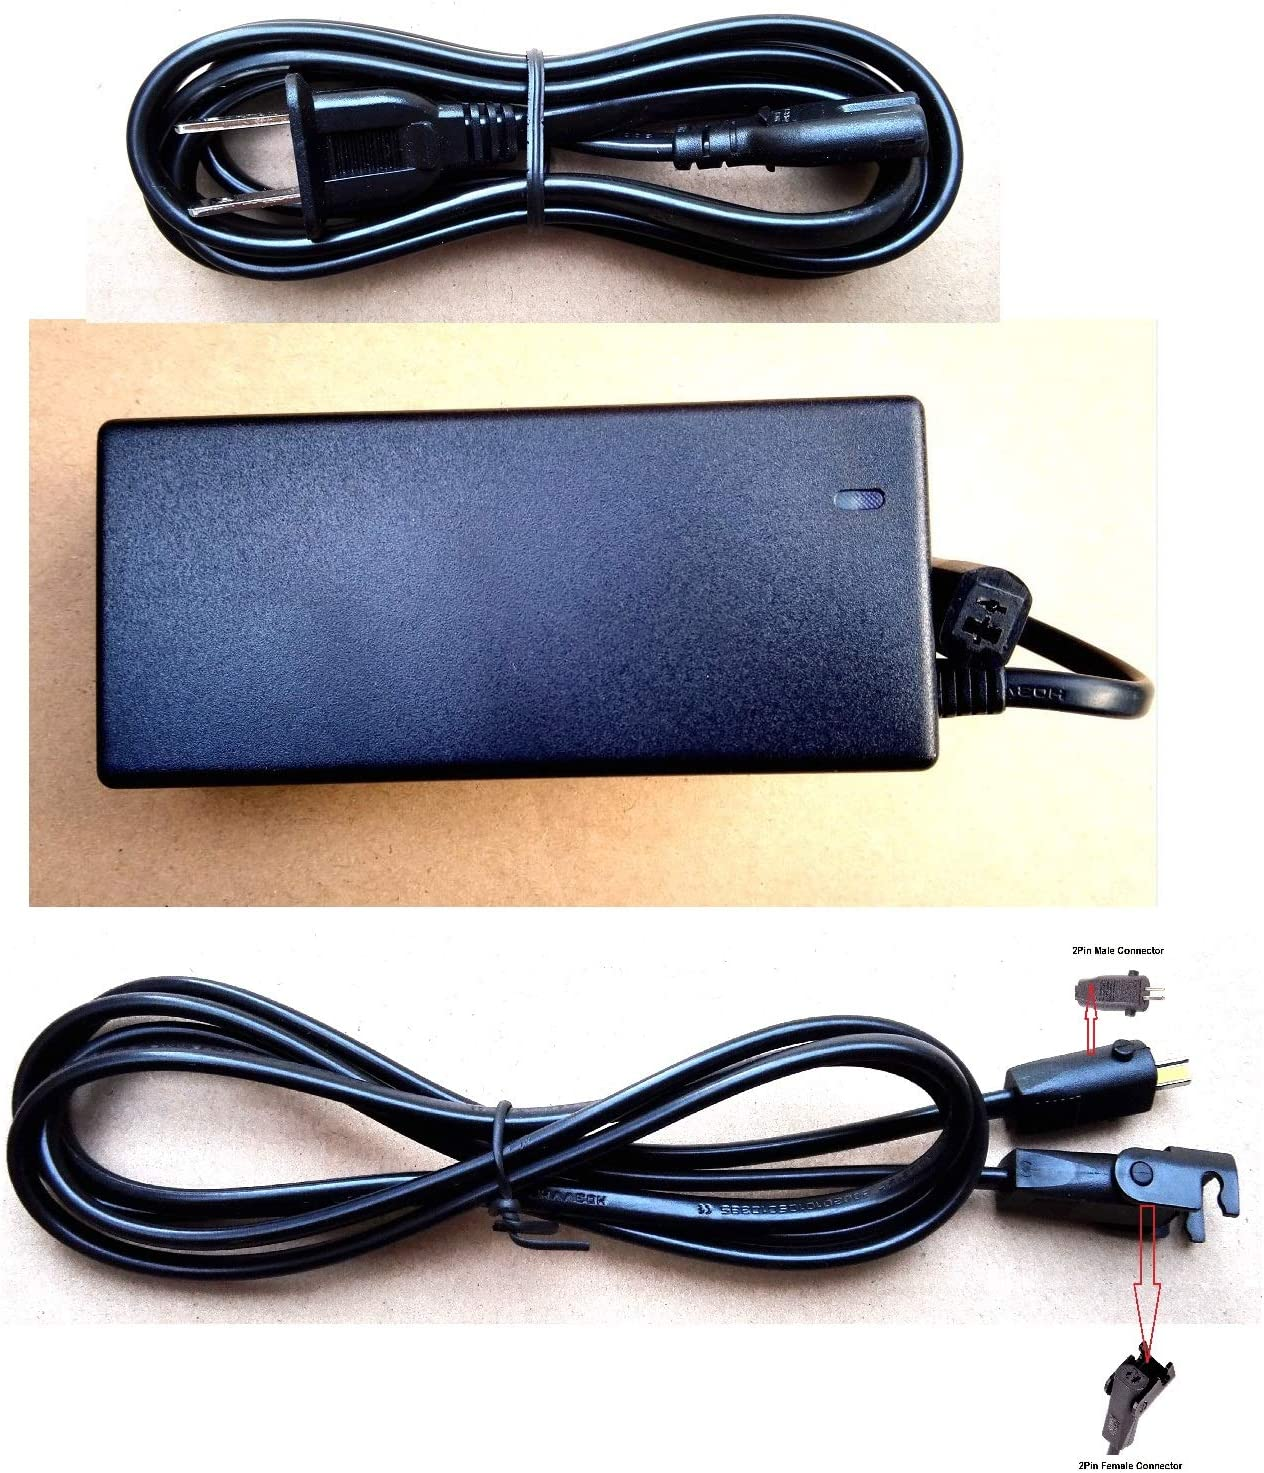 hmleaf Pride Lift Chair Power Transformer Adapter or Okin Electrical Sofa or Limoss Power Recliner Charger 29V 2A, Small Size or with Cables (Adapter+Power Cable+Motor Cable)